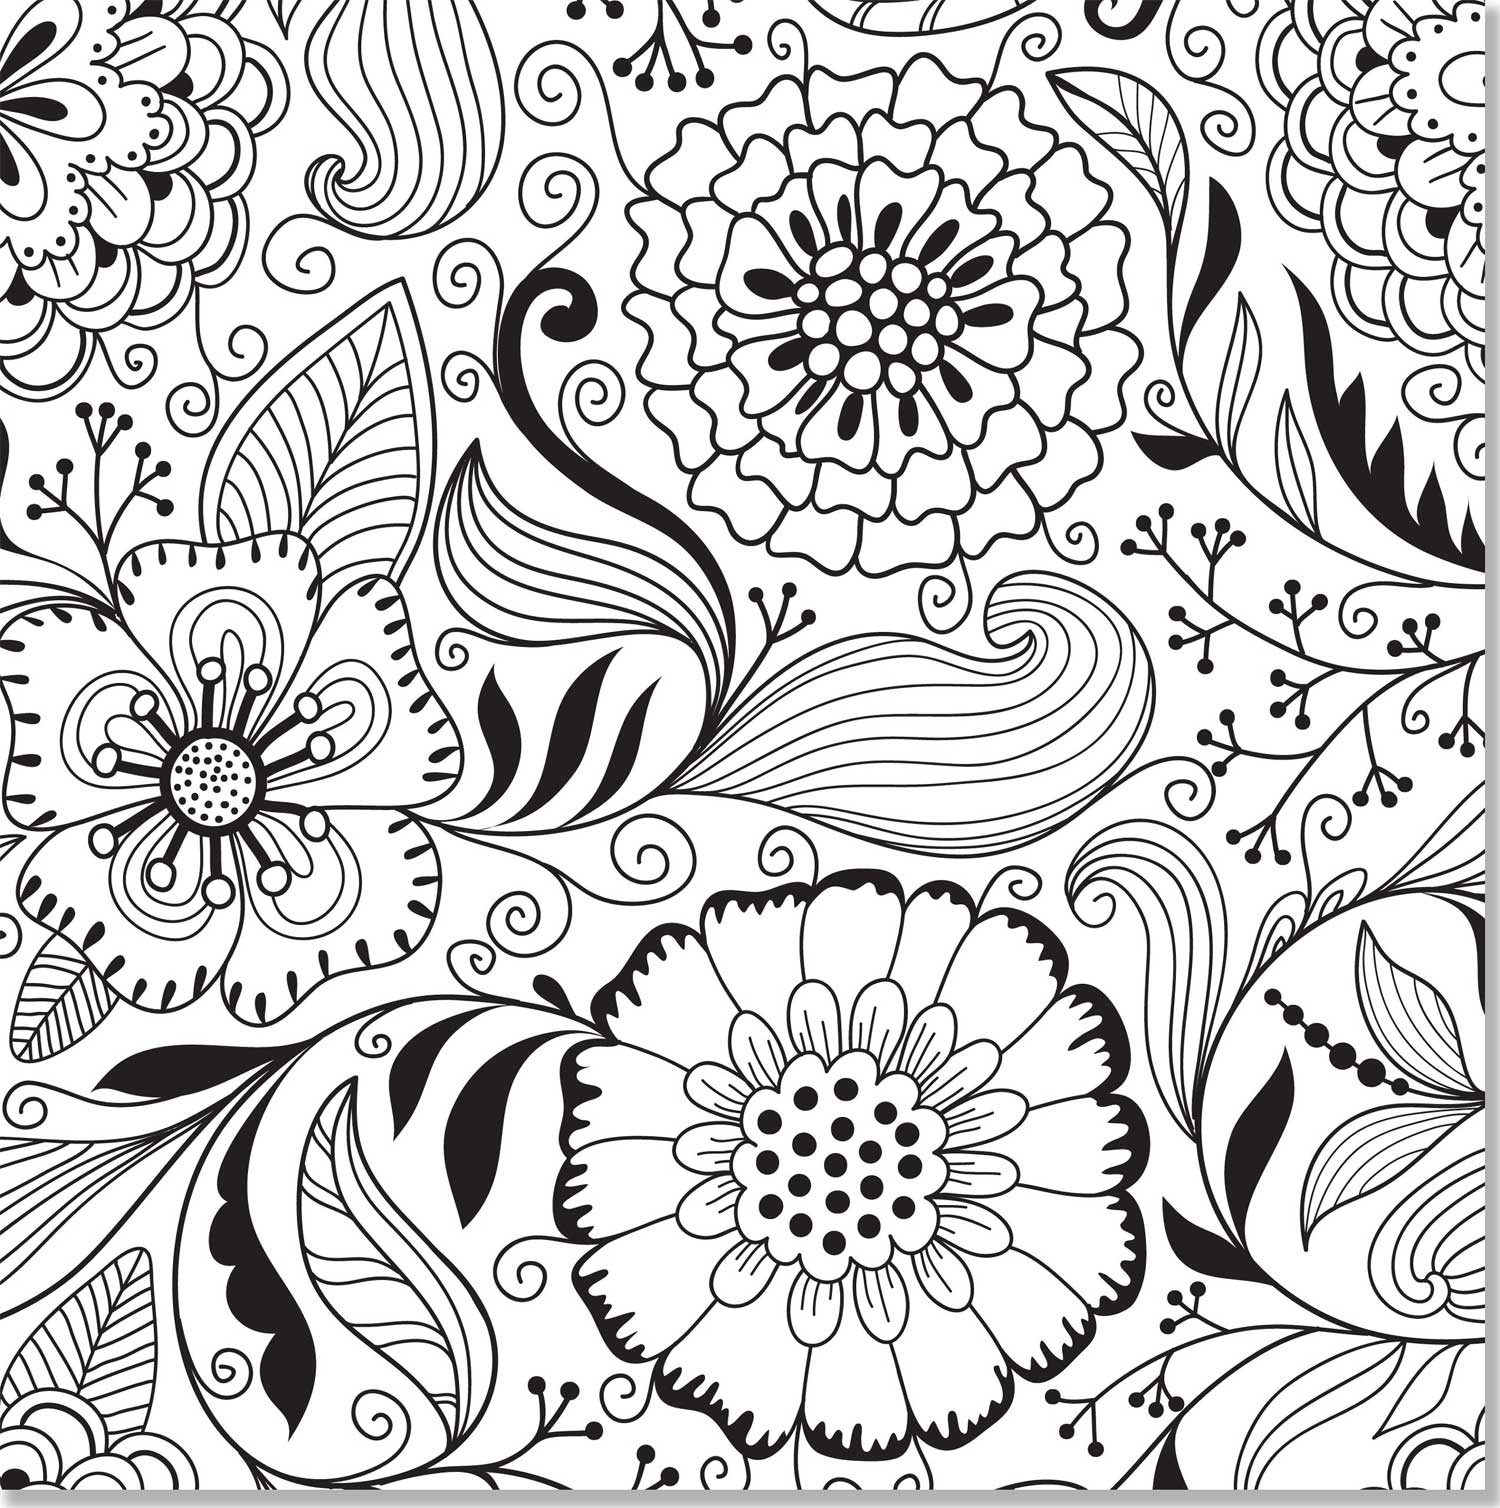 Free Printable Coloring Pages Adults Only - Coloring Home - Free Printable Coloring Pages For Adults Only